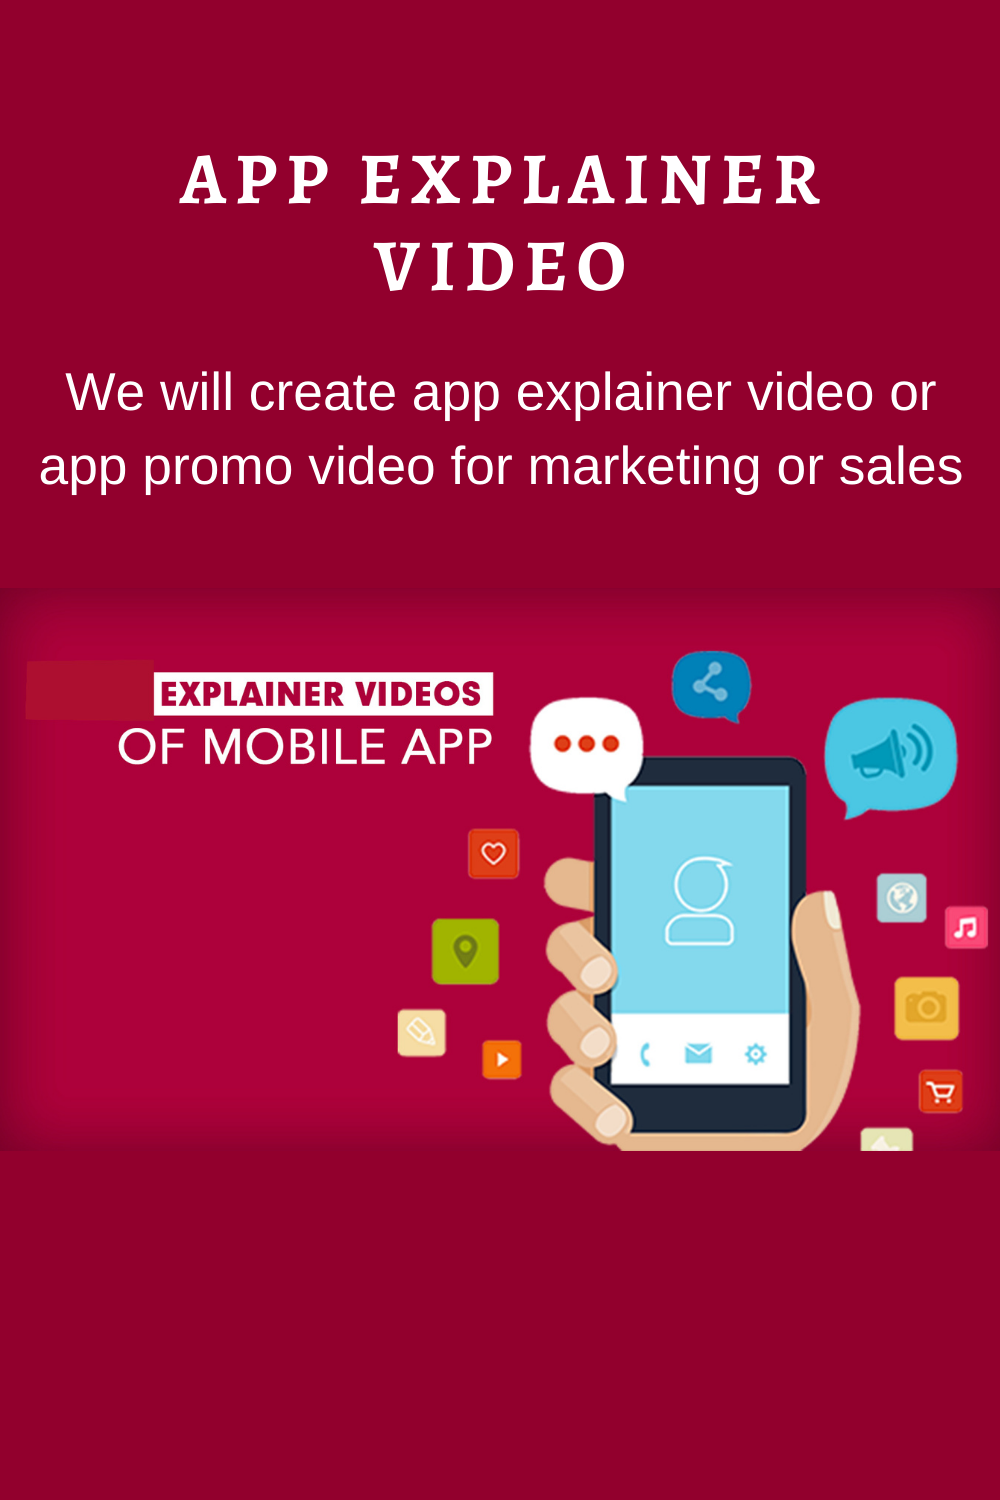 How To Create An App Explainer Video Whiteboard Explainer Video App App Explainer Videos In 2020 Good Apps For Iphone Explainer Videos Kids Iphone Apps